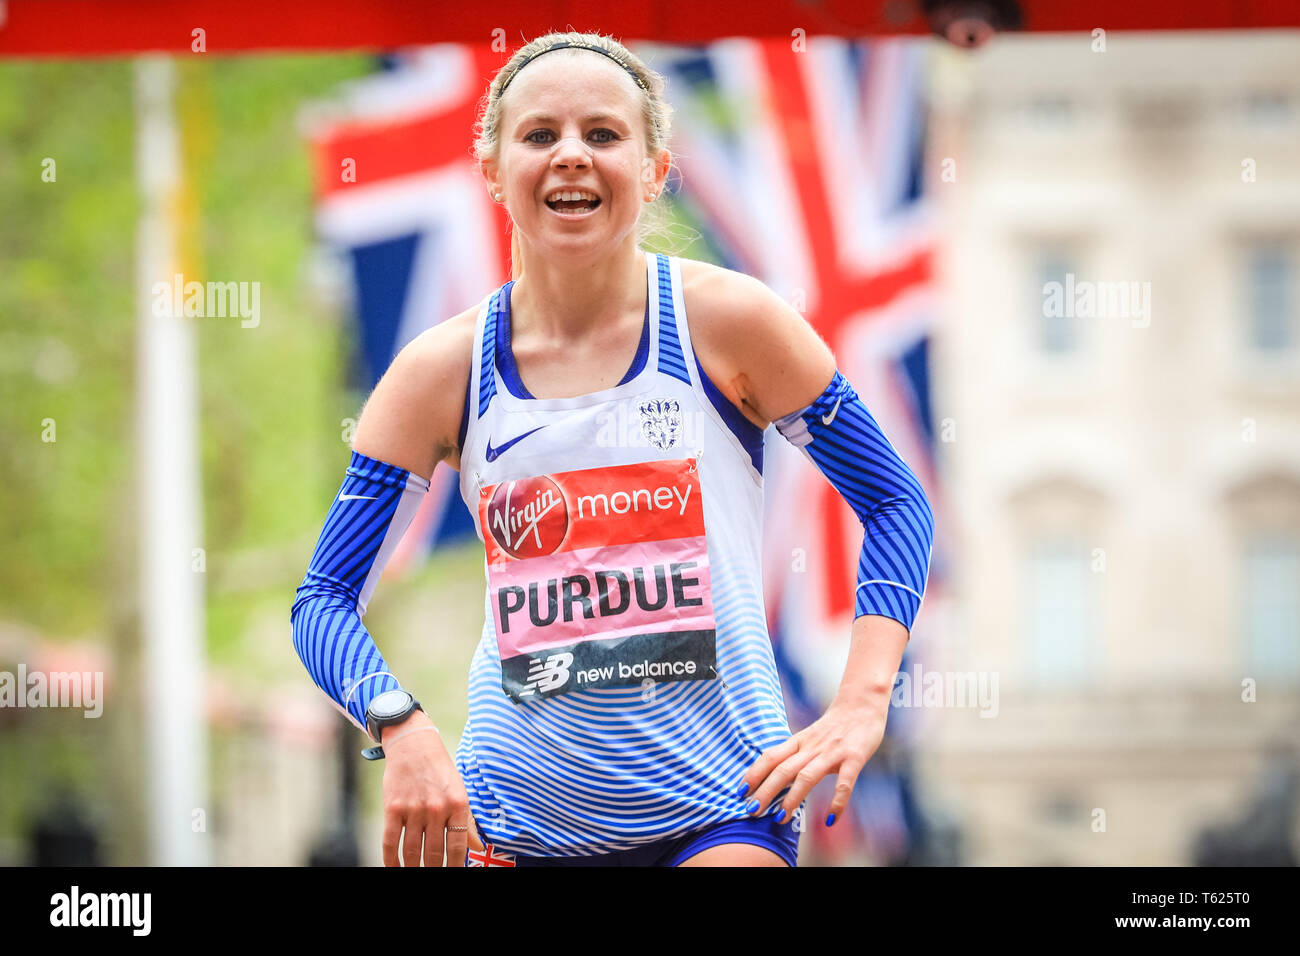 London, UK. 28th April 2019. British runner Charlotte Purdue comes 10th in the women's race and is happy with her performance. Elite Men's and Women's races. The world's top runners once again assemble in for the London marathon, to contest the 39th race. Credit: Imageplotter/Alamy Live News Stock Photo